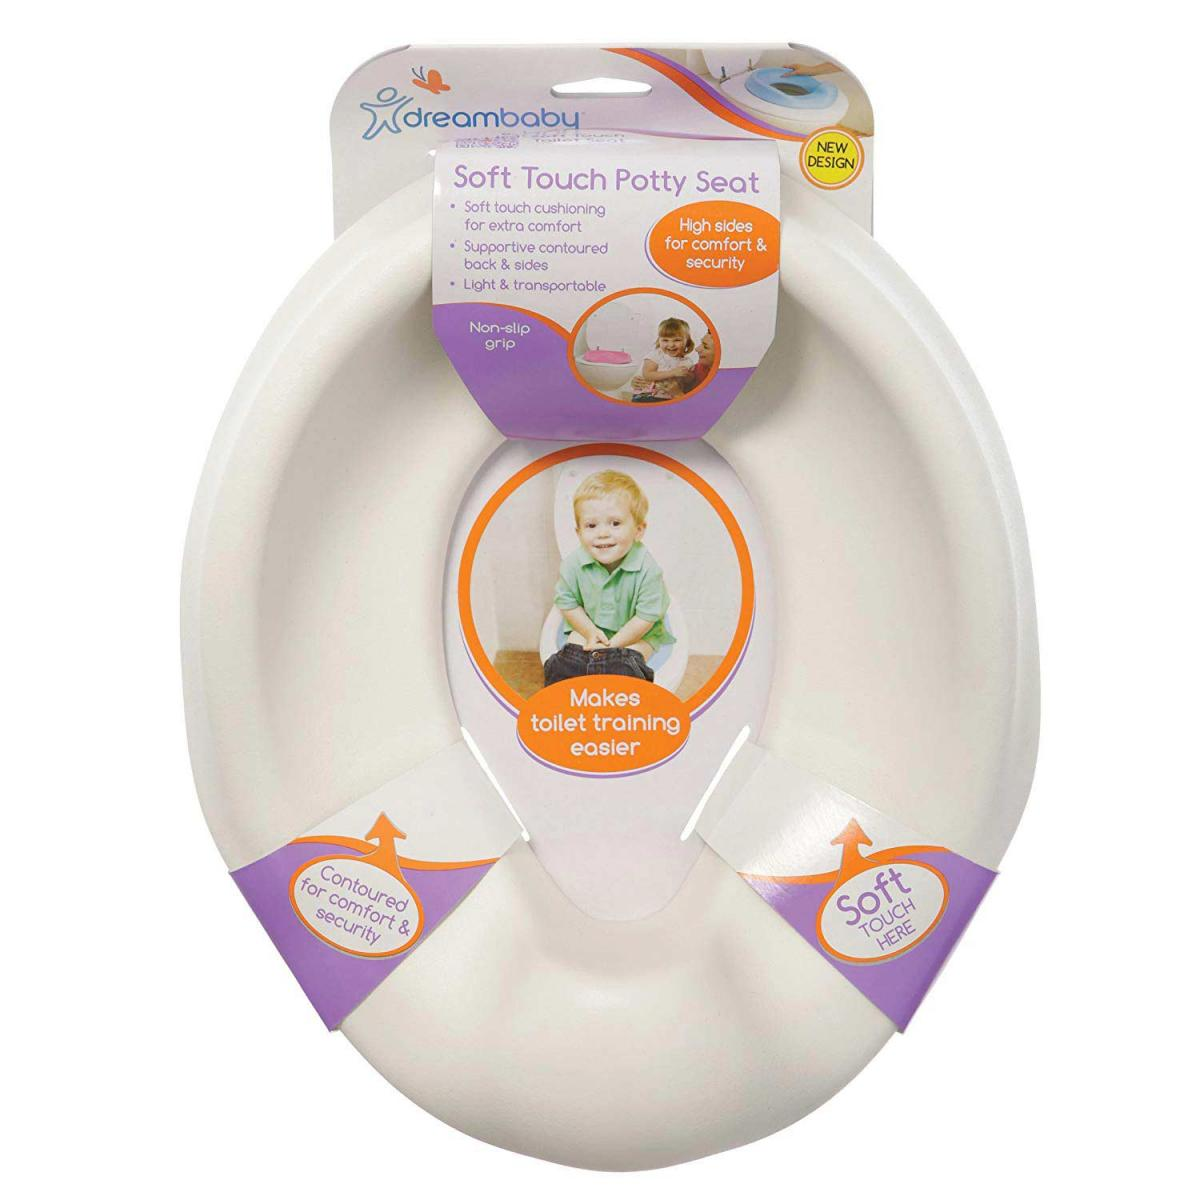 Dreambaby Soft Touch Potty Seat